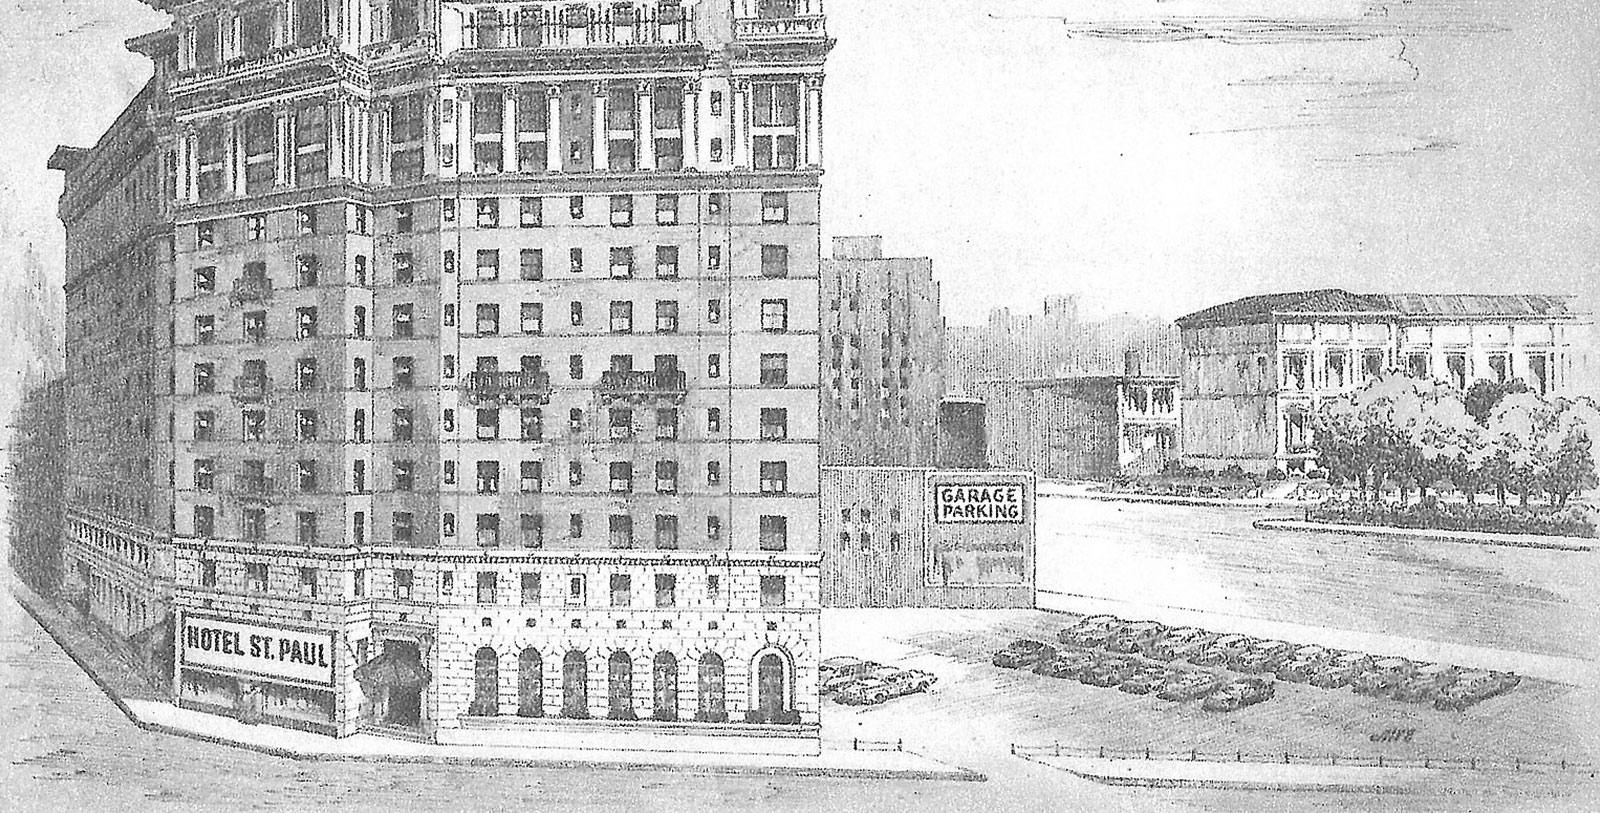 Image of The Saint Paul Hotel, 1910, Member of Historic Hotels of America, in St. Paul, Minnesota, History